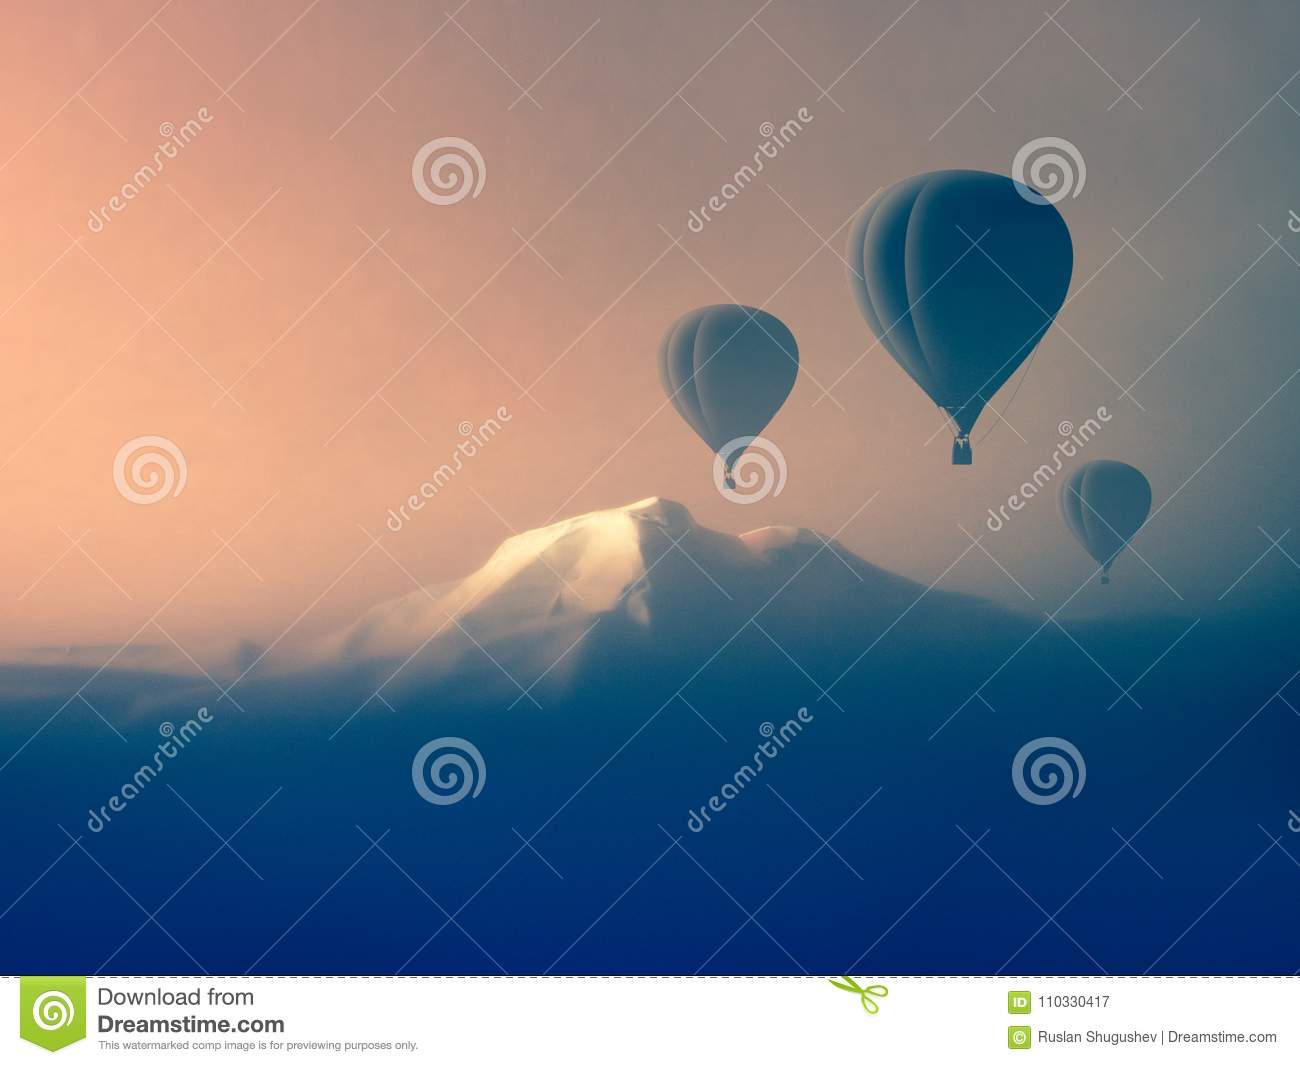 Air balloon flying in the mountains